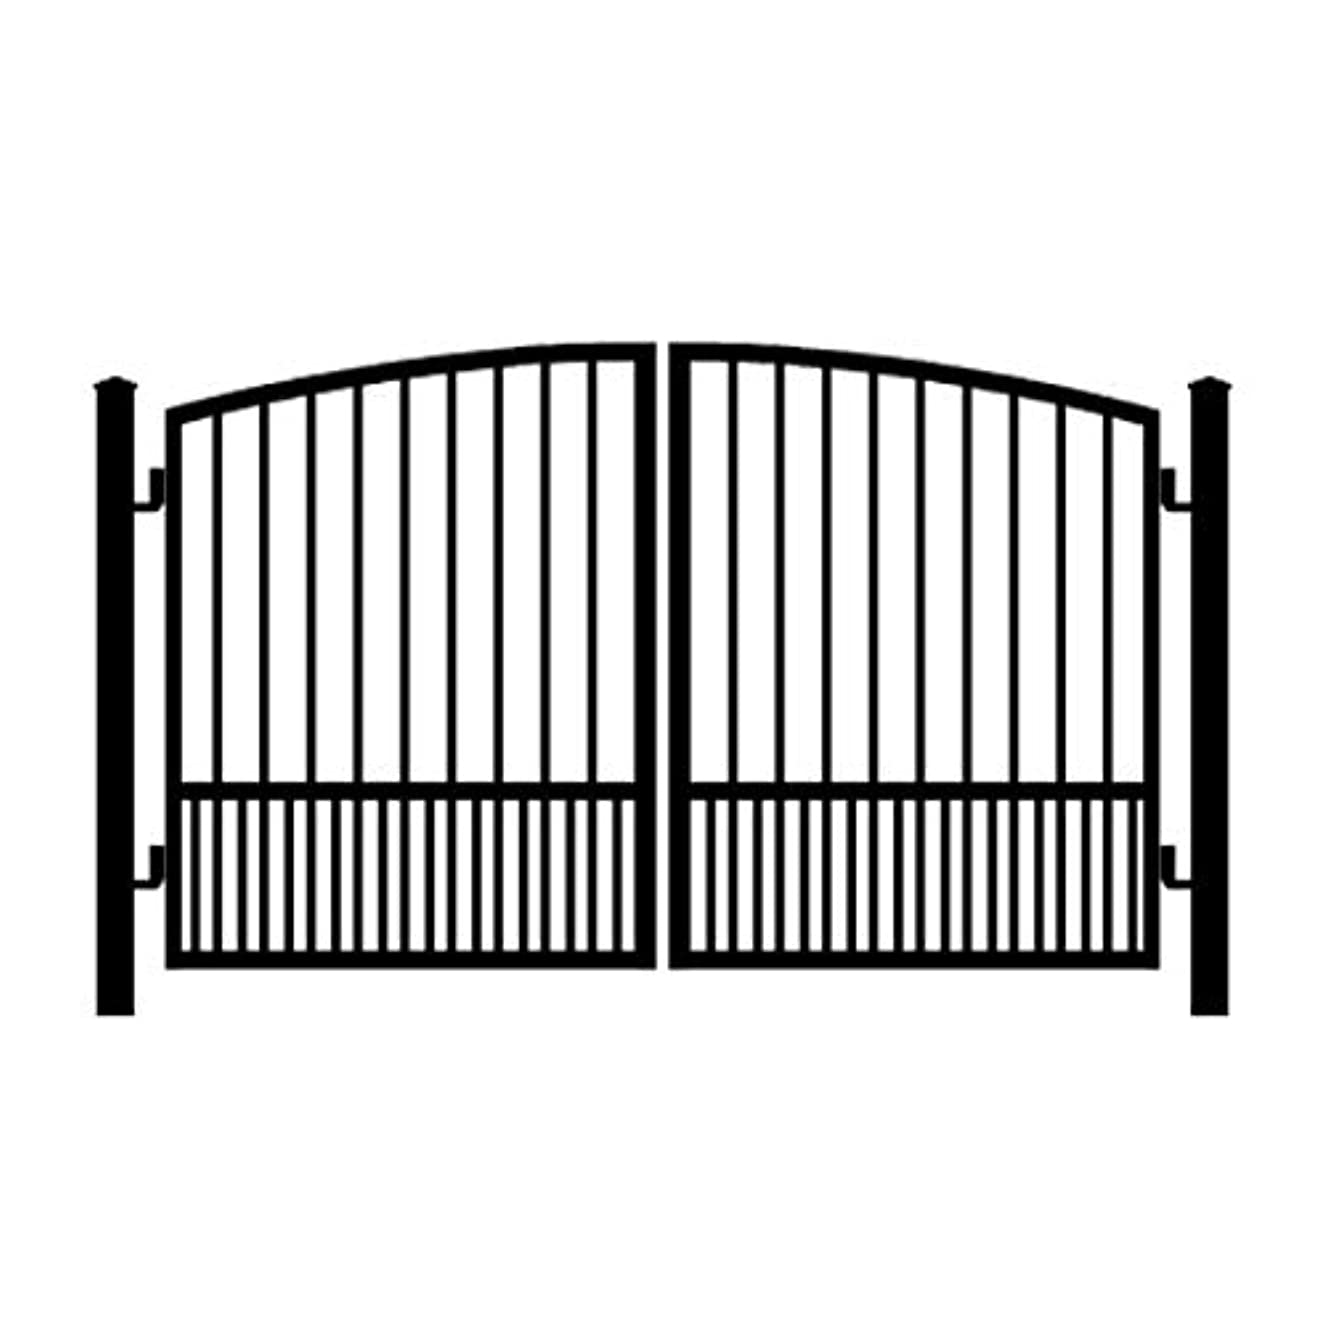 StandardGates - Wrought Iron Driveway Gate Kit - 9 ft 0 in, Dual Swing, Puppy Pickets, Arched